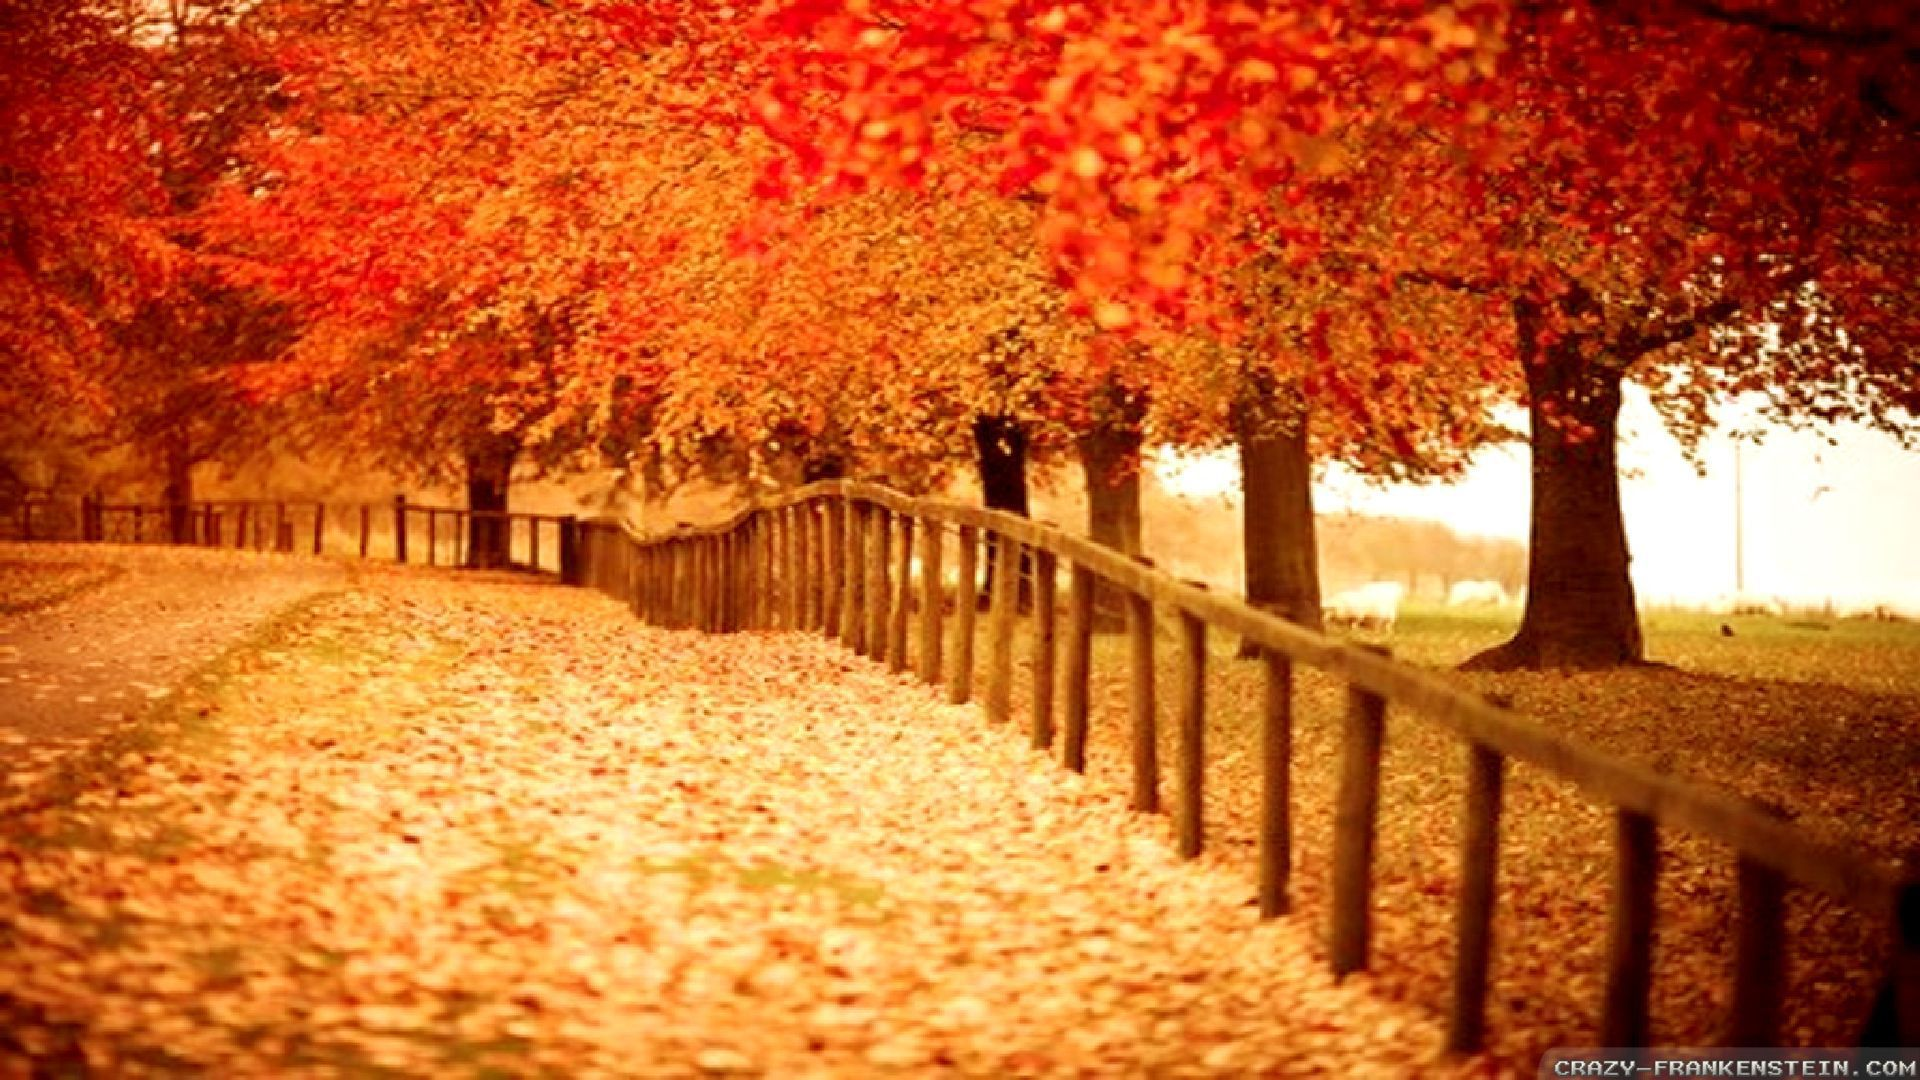 Beautiful Fall Pictures Beautiful Autumn Photos Widescreen 2 Hd Wallpapers Fall Desktop Backgrounds Fall Wallpaper Desktop Wallpaper Fall